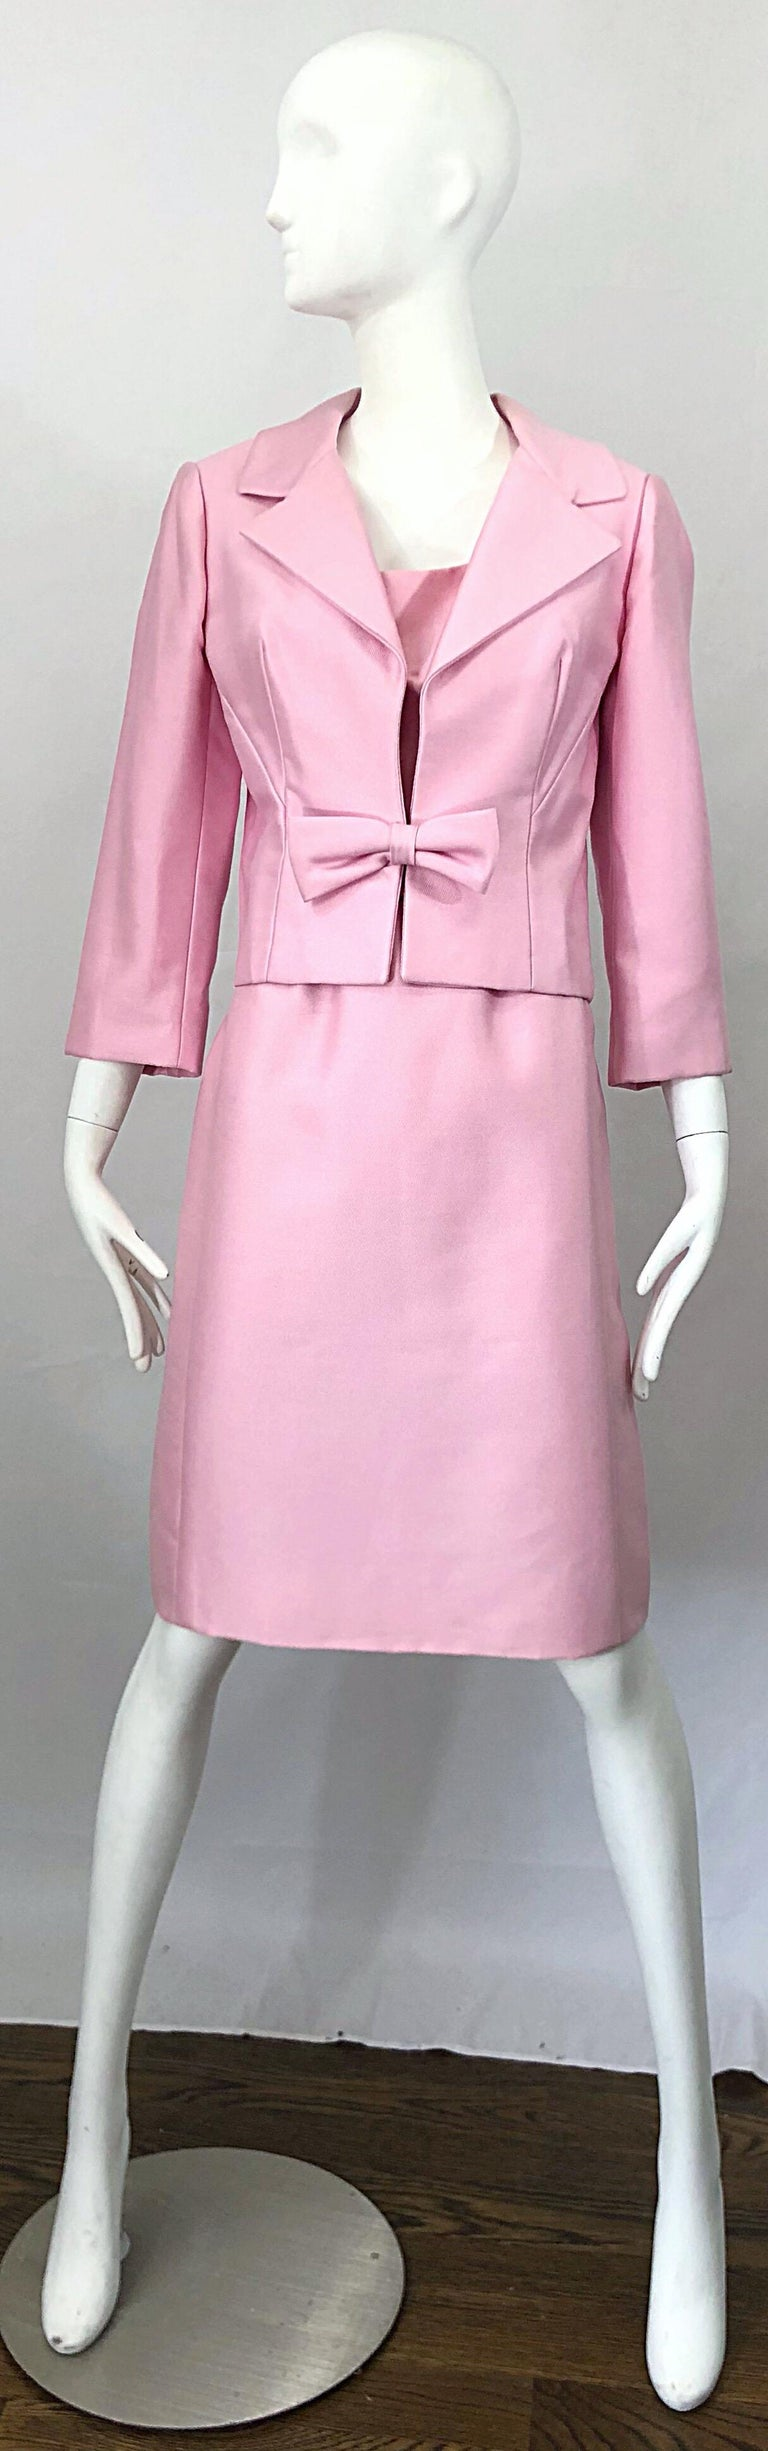 Chic 1960s Pat Sandler Light Pink Vintage 60s Silk Shift Dress and Jacket Suit In Excellent Condition For Sale In Chicago, IL